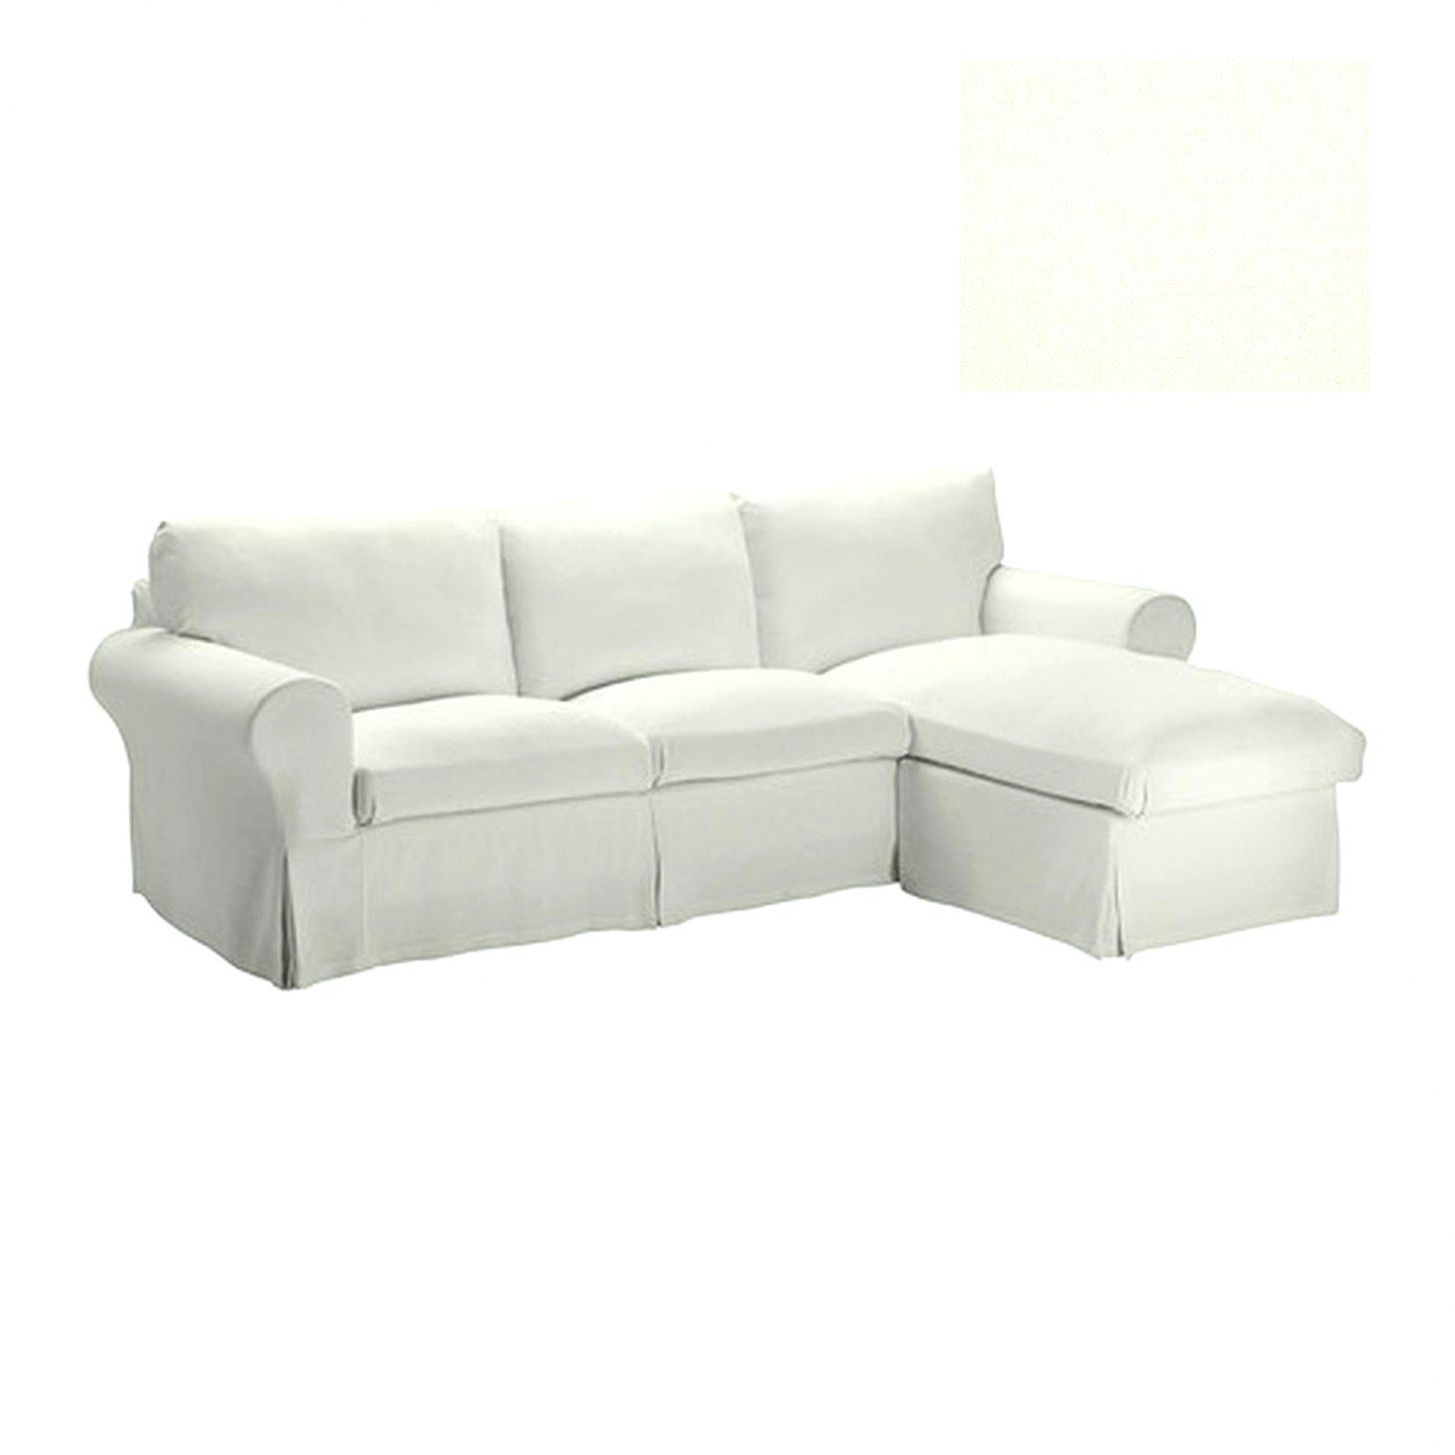 Bunch Ideas Of Chaise Cover For Chaise Ikea Ektorp Couch Sectional Intended For Most Recent Ektorp Chaises (View 4 of 15)